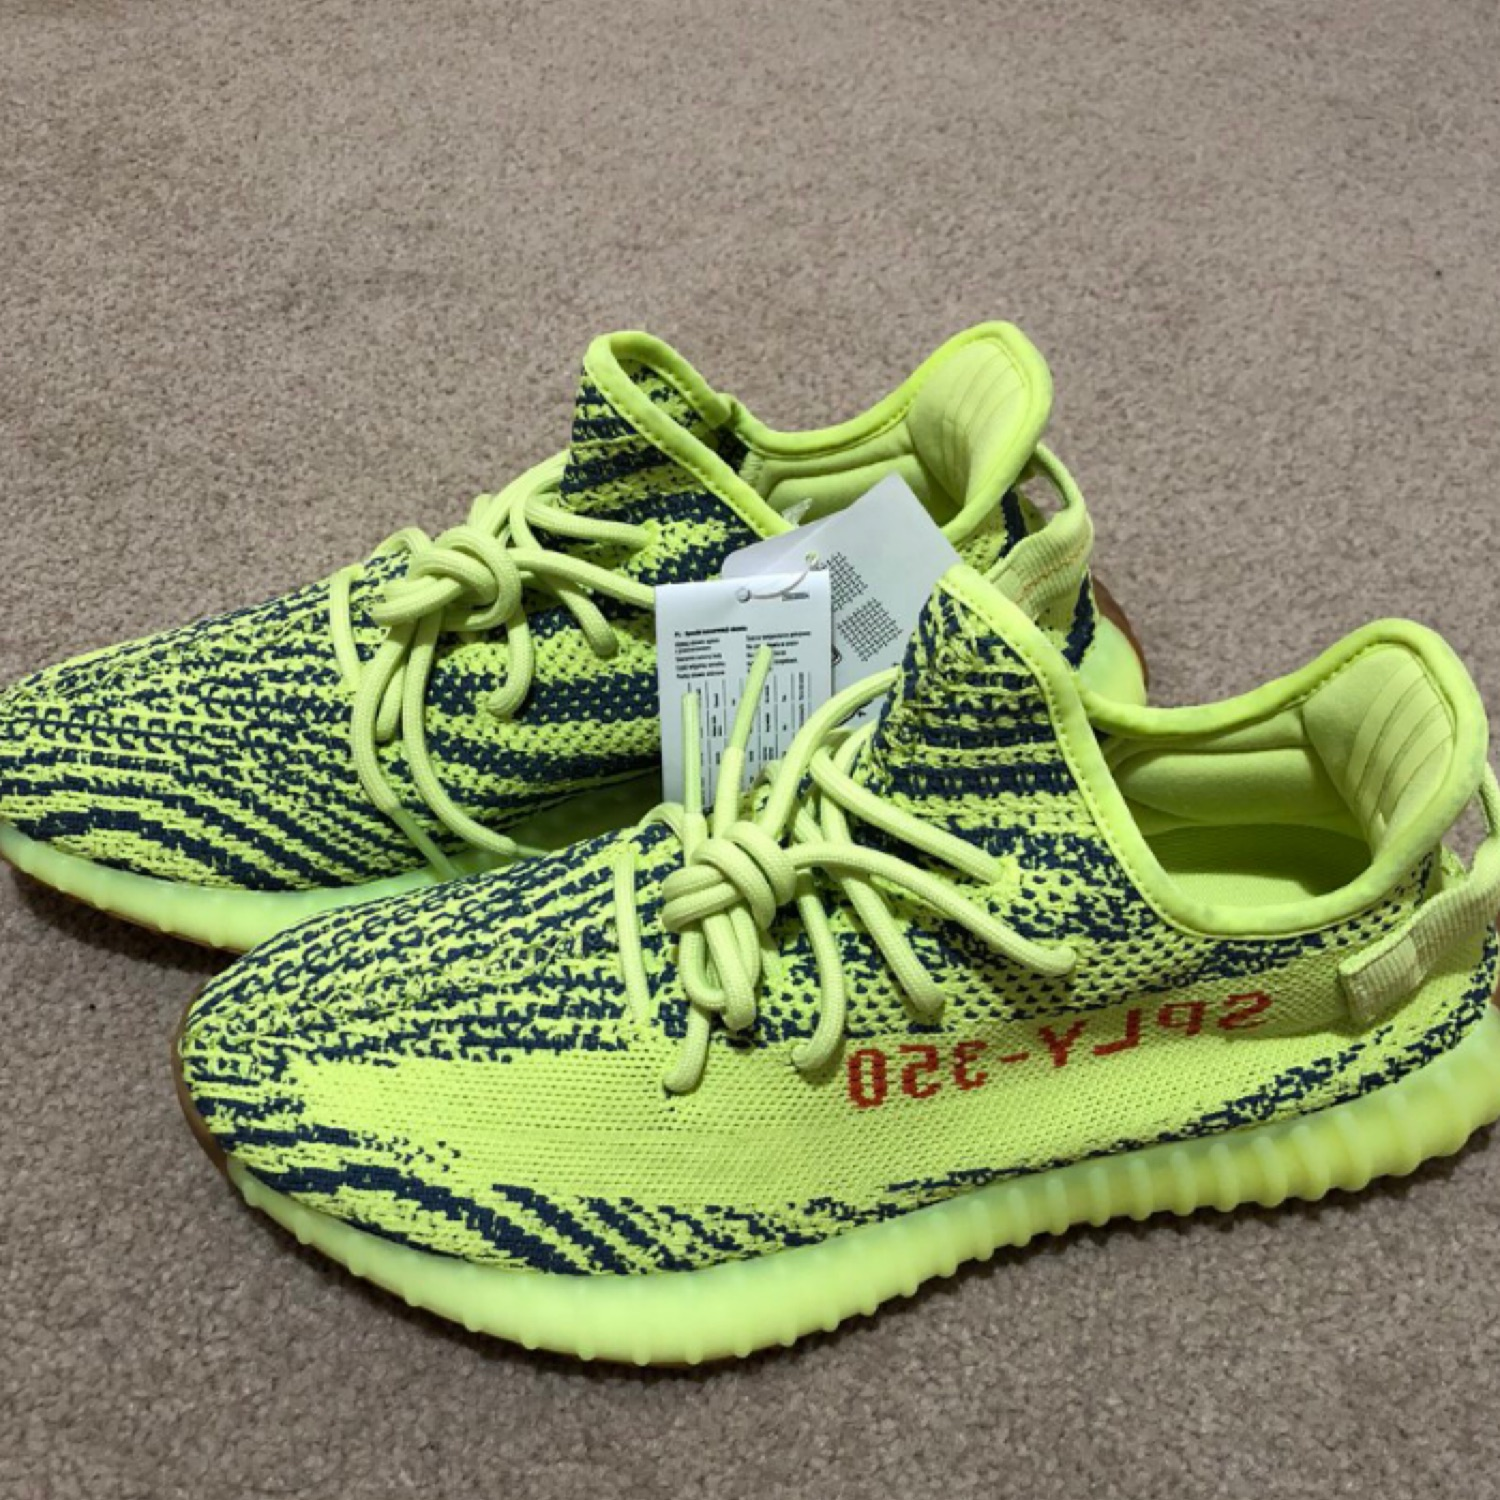 the best attitude e0b05 d97bd Adidas Yeezy Boost 350 V2 Frozen Yellow Og